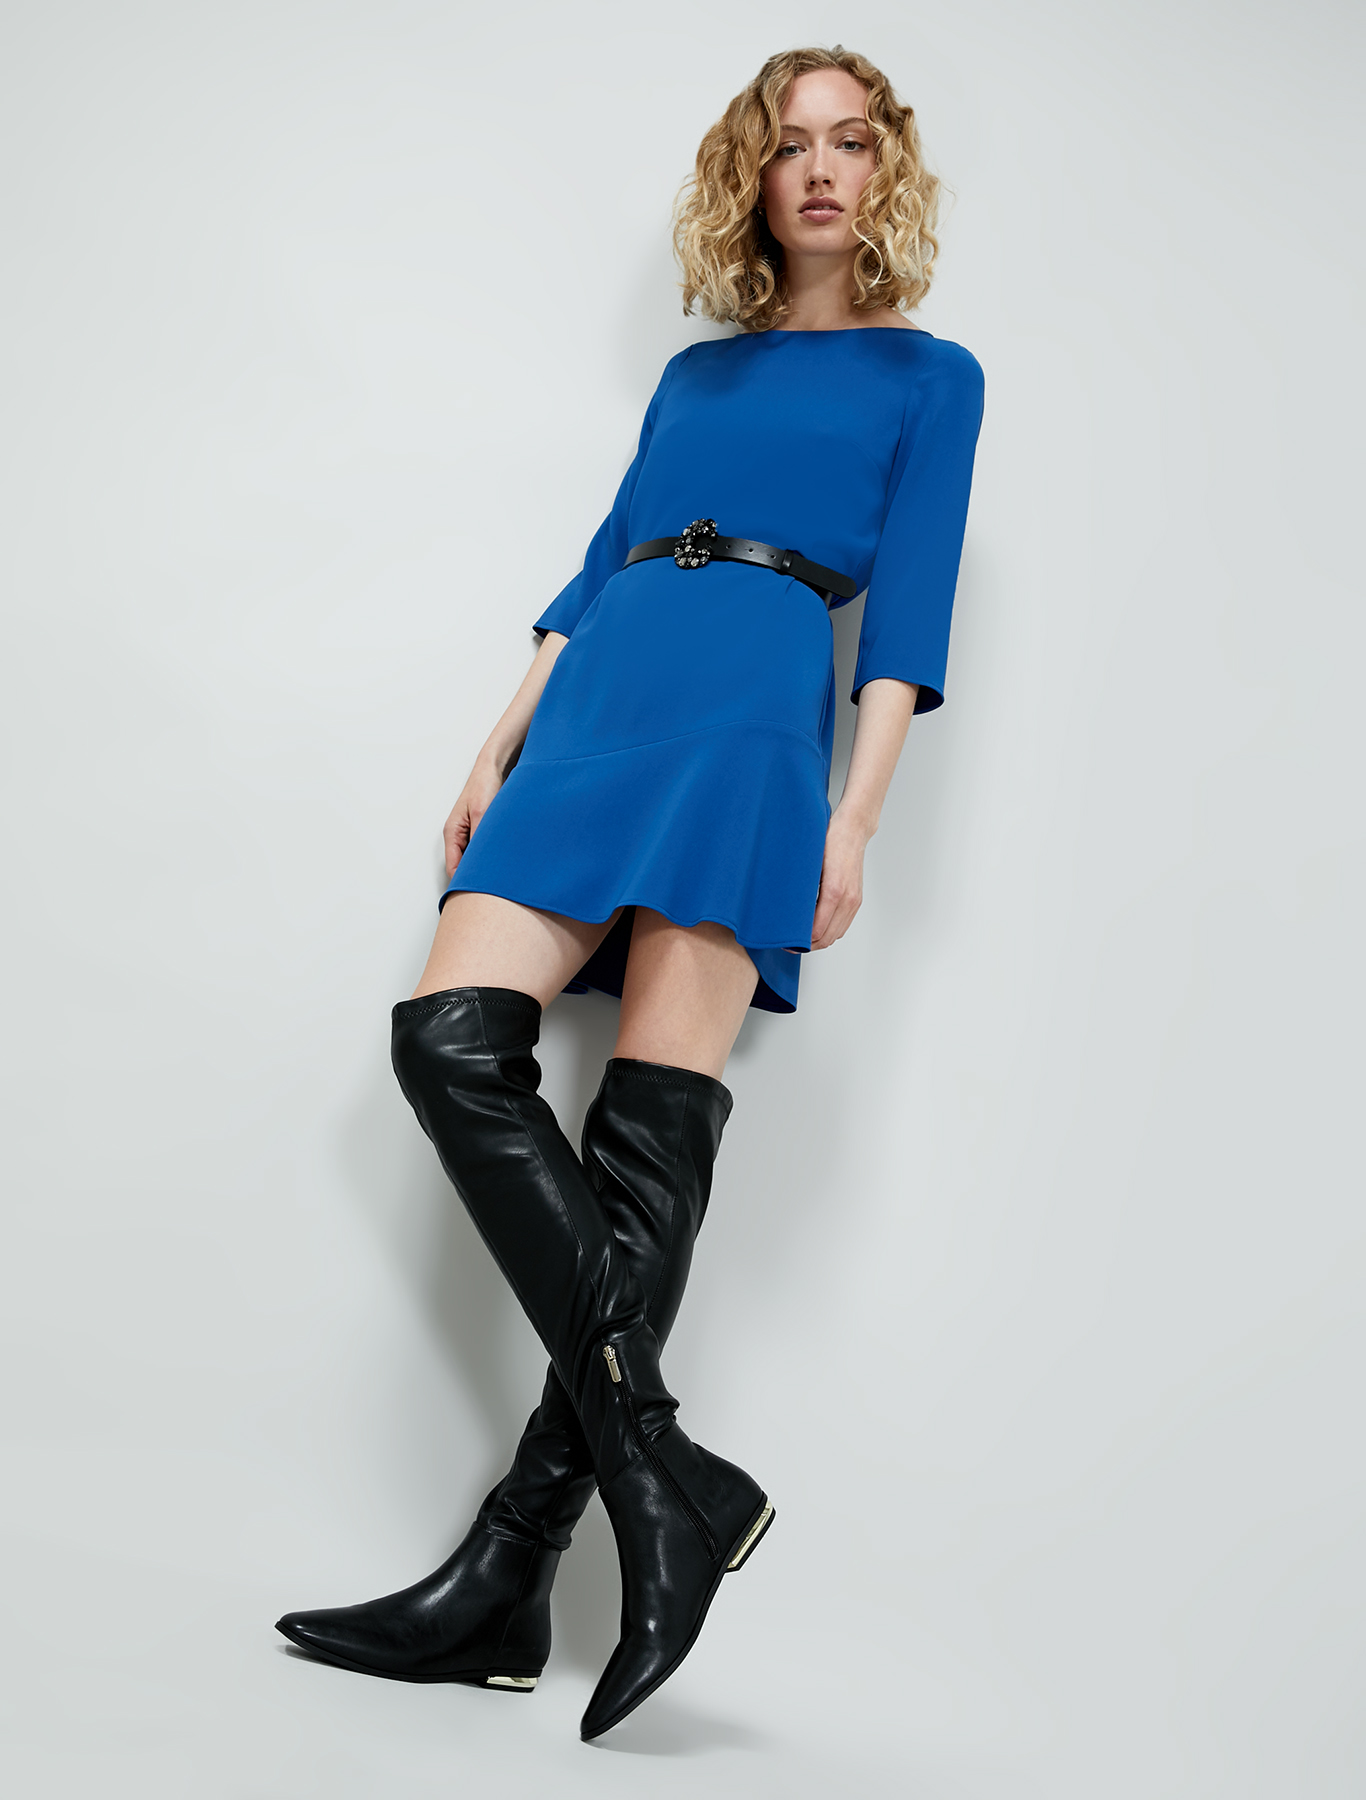 Flowing fabric dress - air force blue - pennyblack